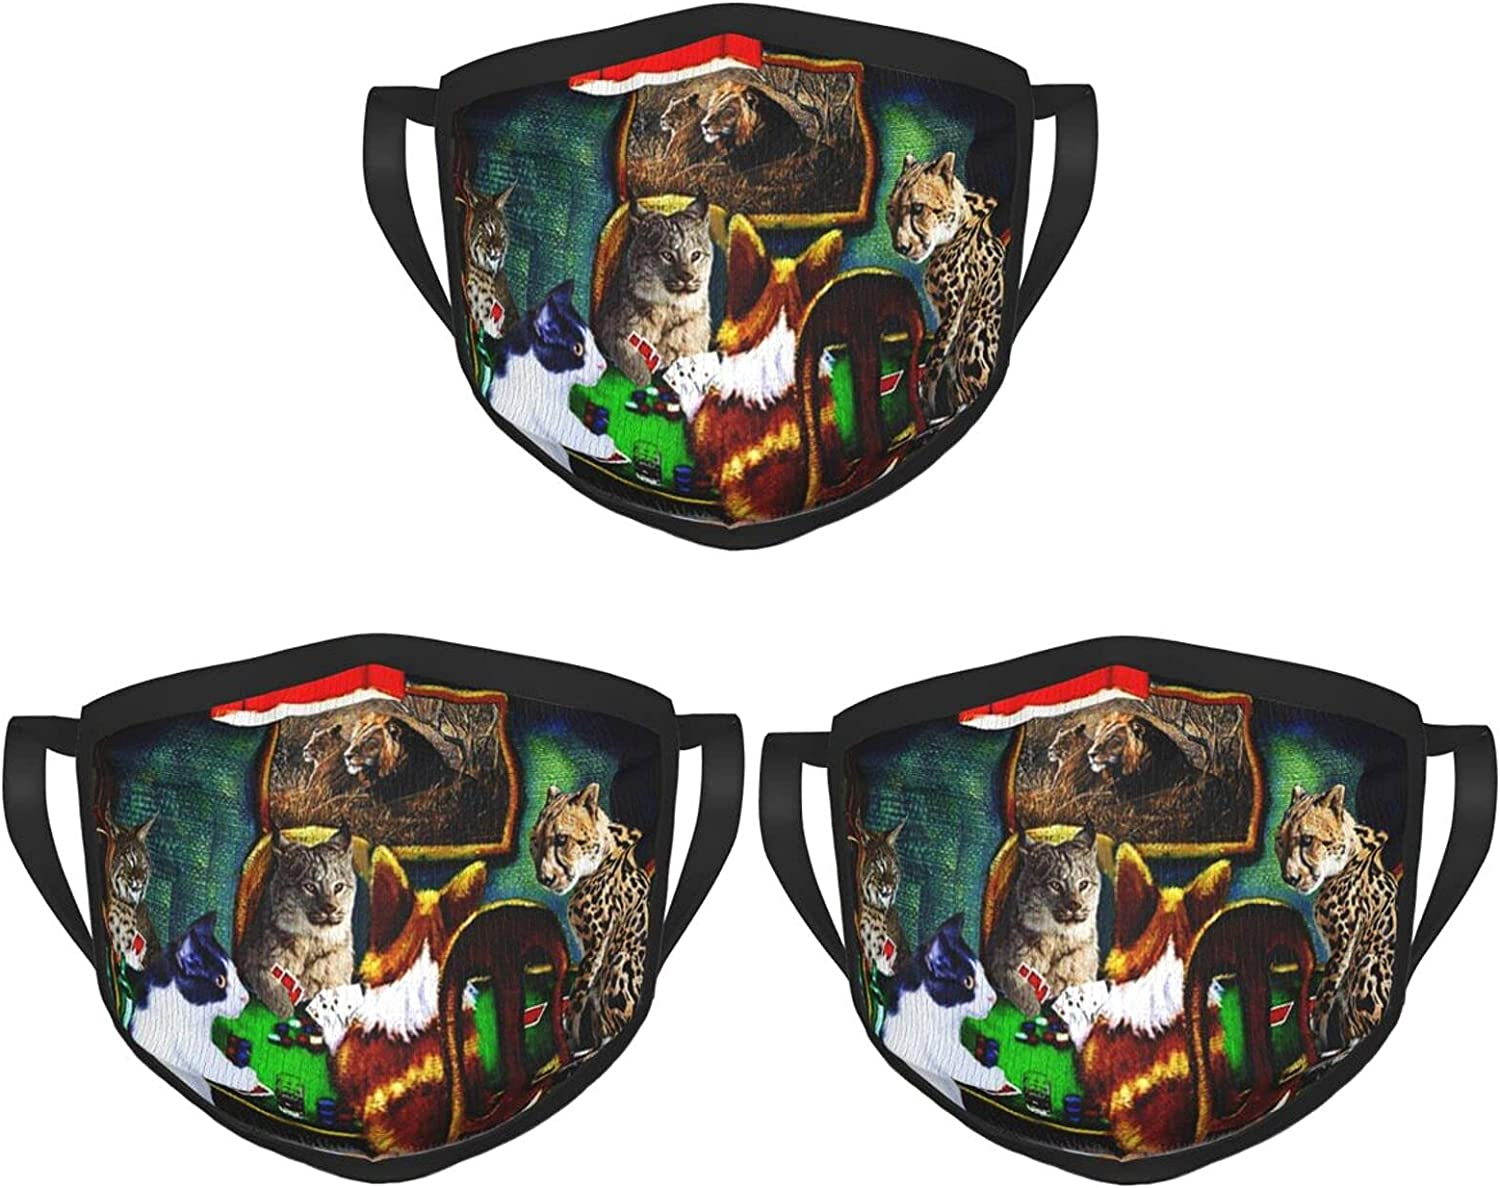 Balaclava Earmuffs Happy Cats Playing Wild Poker Face Mouth Cover Mask Reusable Dust Scarf Towel Cover Headwrap